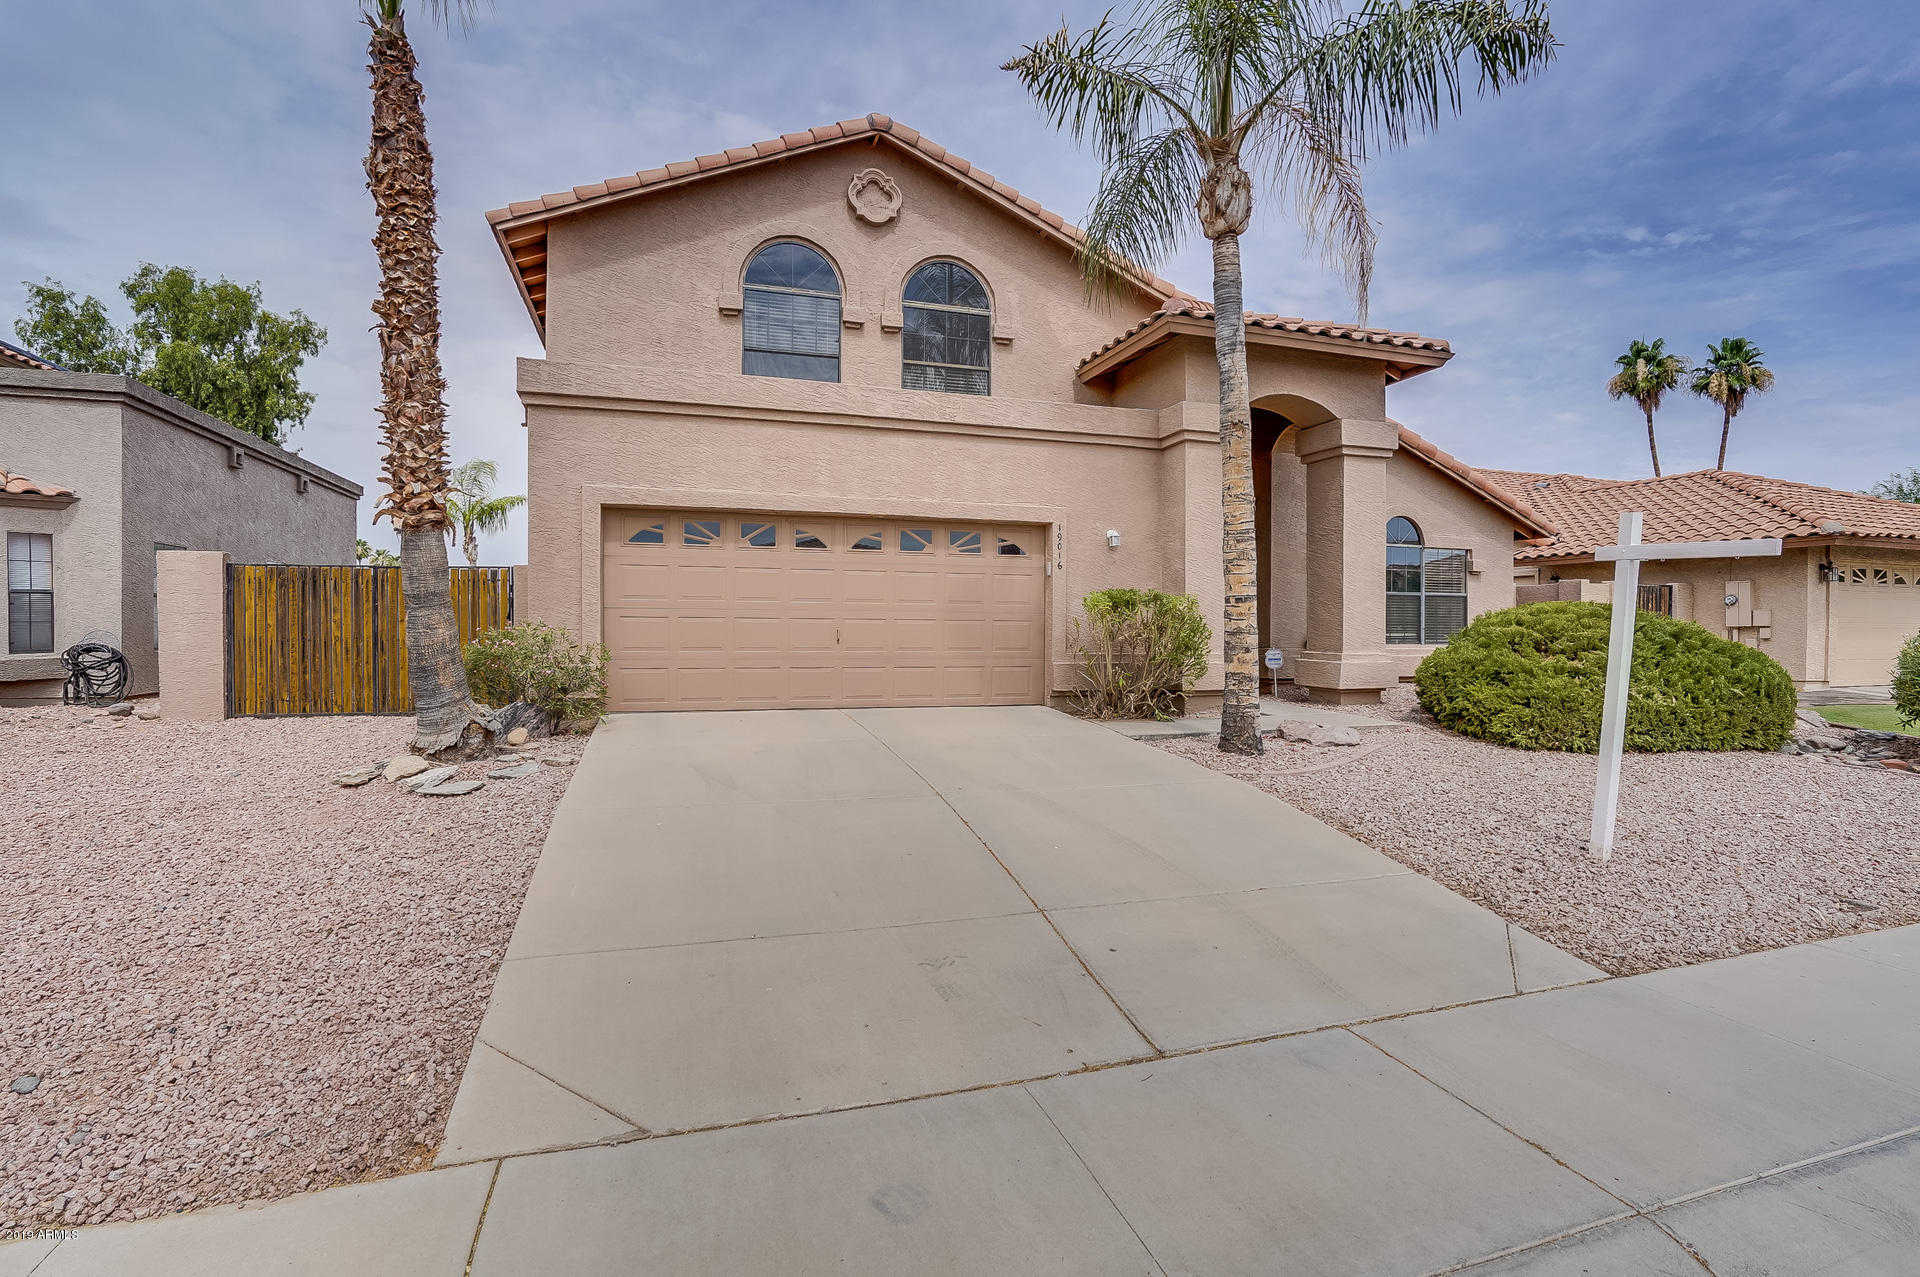 $385,000 - 4Br/3Ba - Home for Sale in Arrowhead Ranch, Glendale